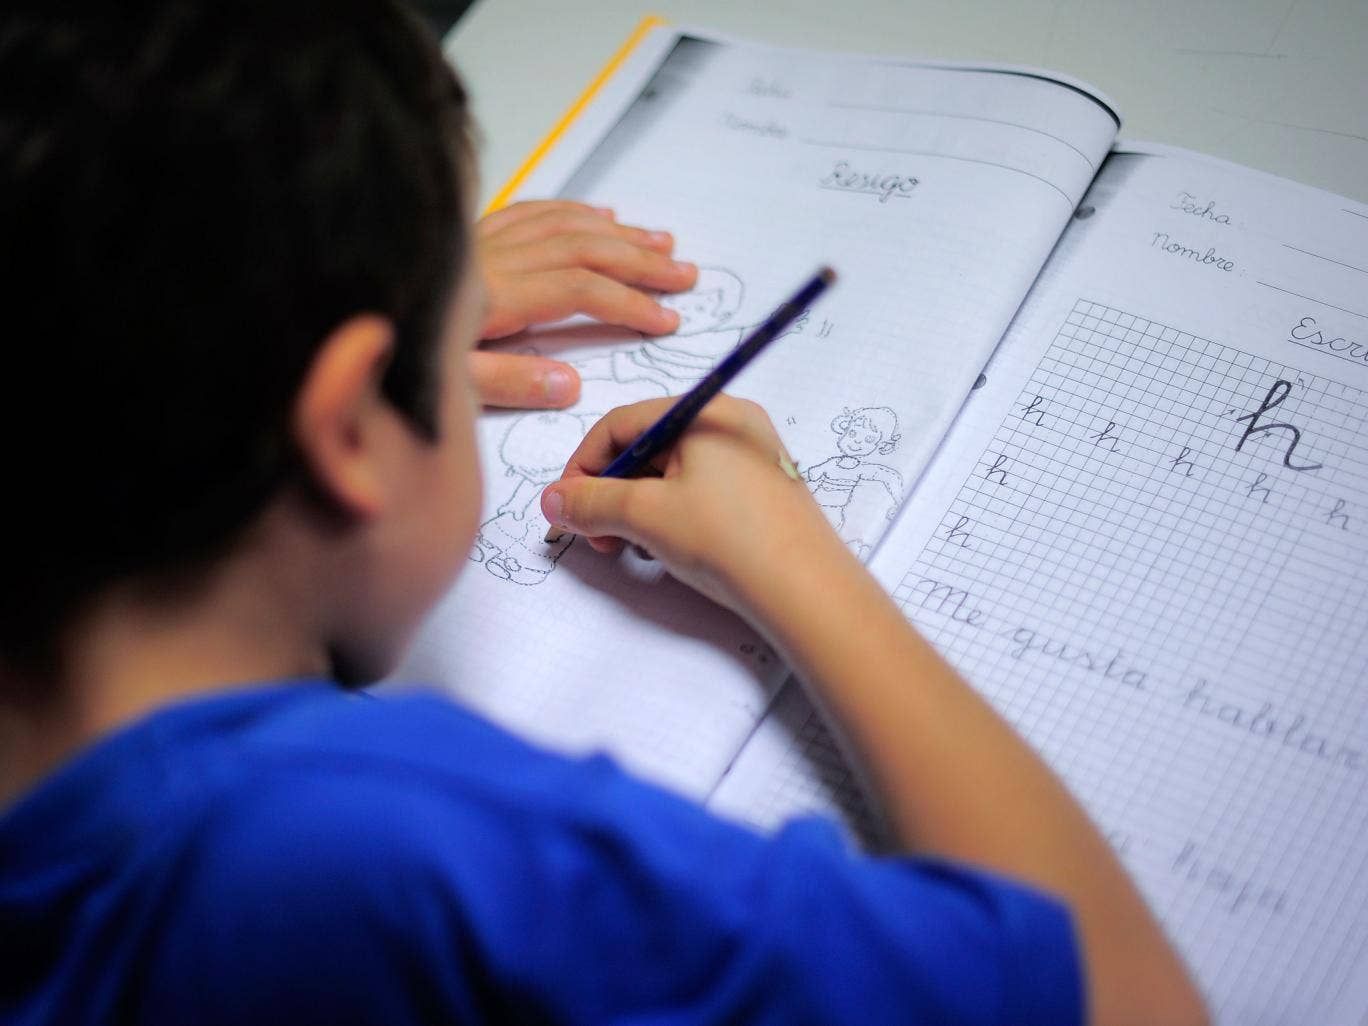 A young boy from a financially troubled family does his homework at the care centre Marti-Codolar in Barcelona on November 21, 2012 where he spends his afternoons with other children. Children from many families brought close to poverty by Spain's economi